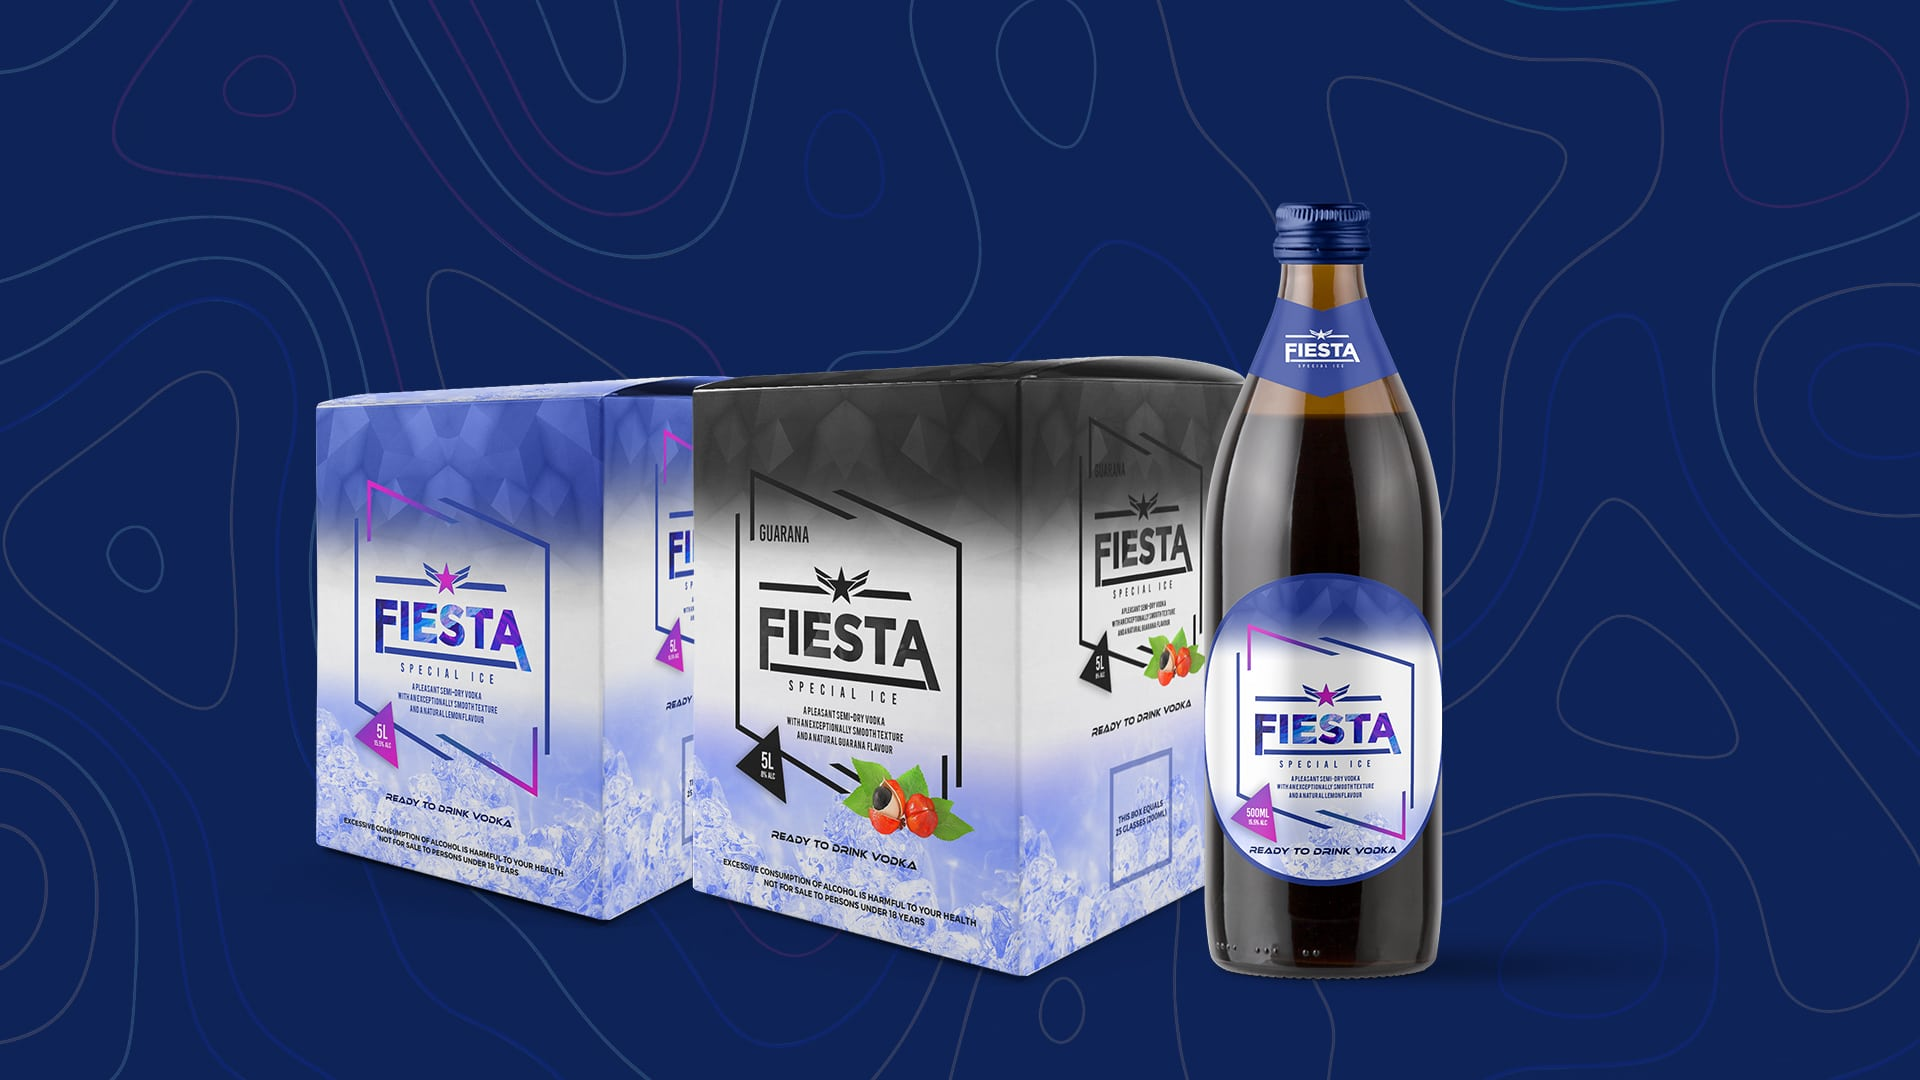 Fiesta Special Ice Packaging Deigned by Jabari Creative Studios